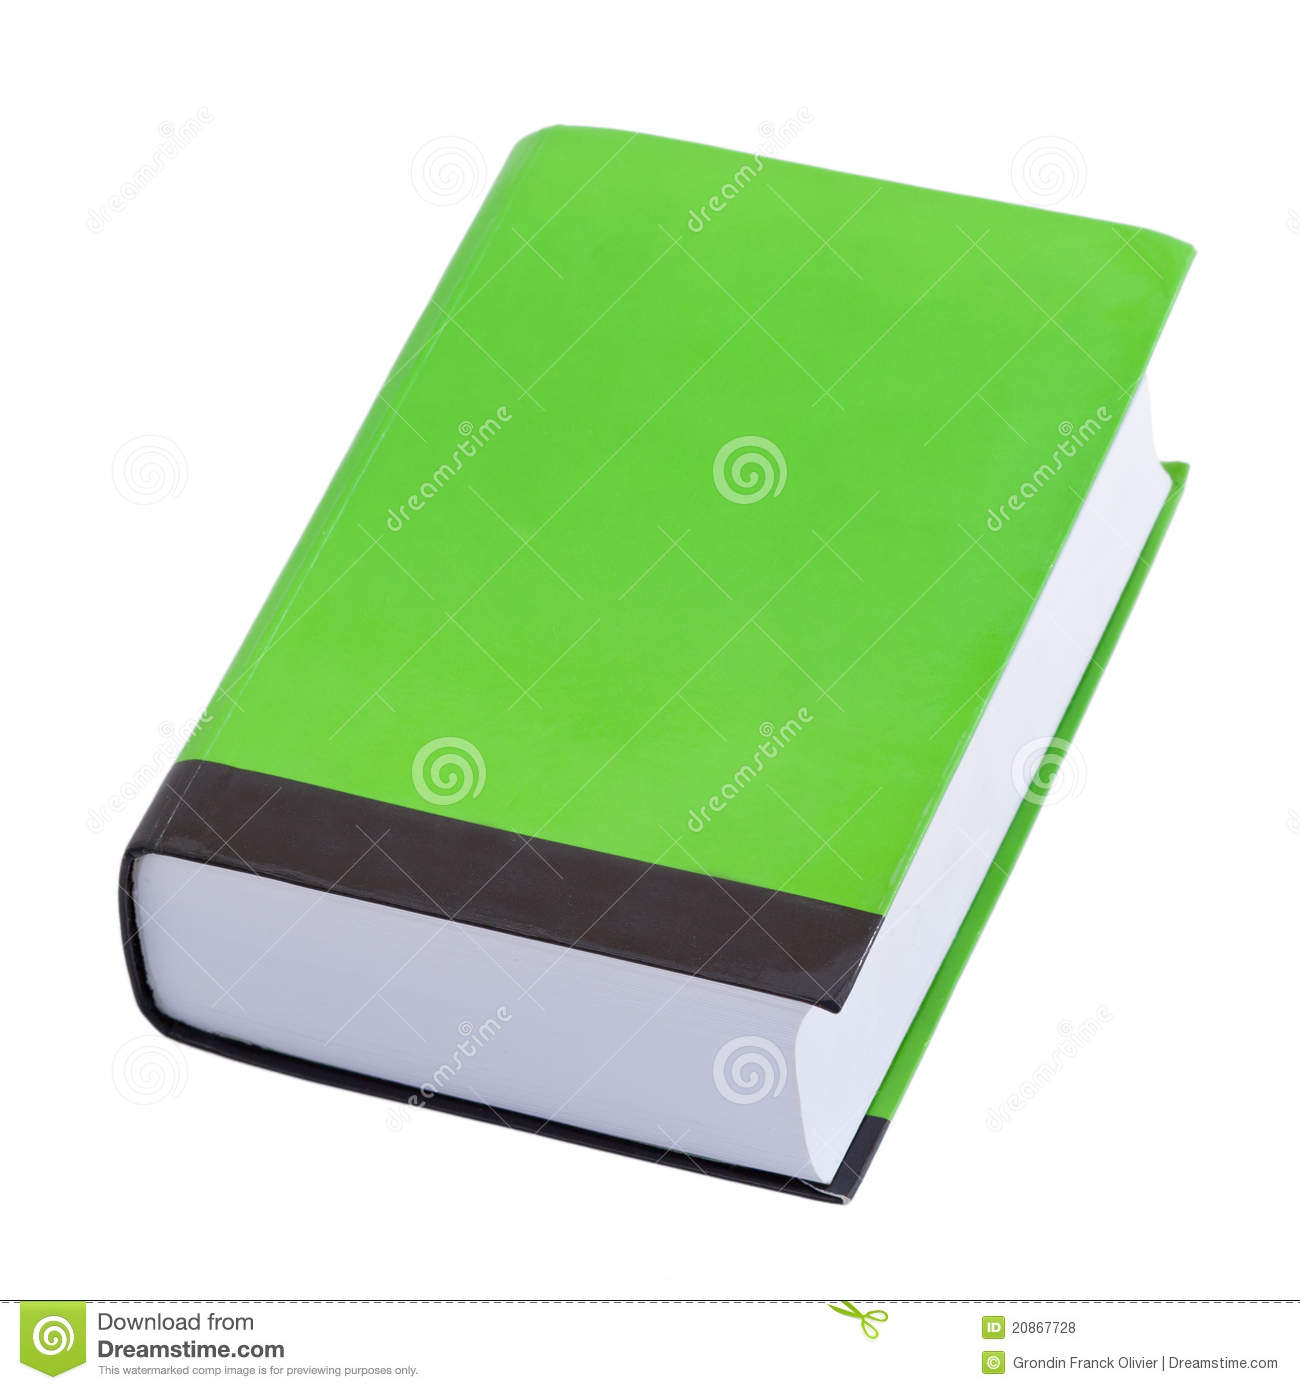 Cookbook With Green Cover : Green book with blank cover royalty free stock photos